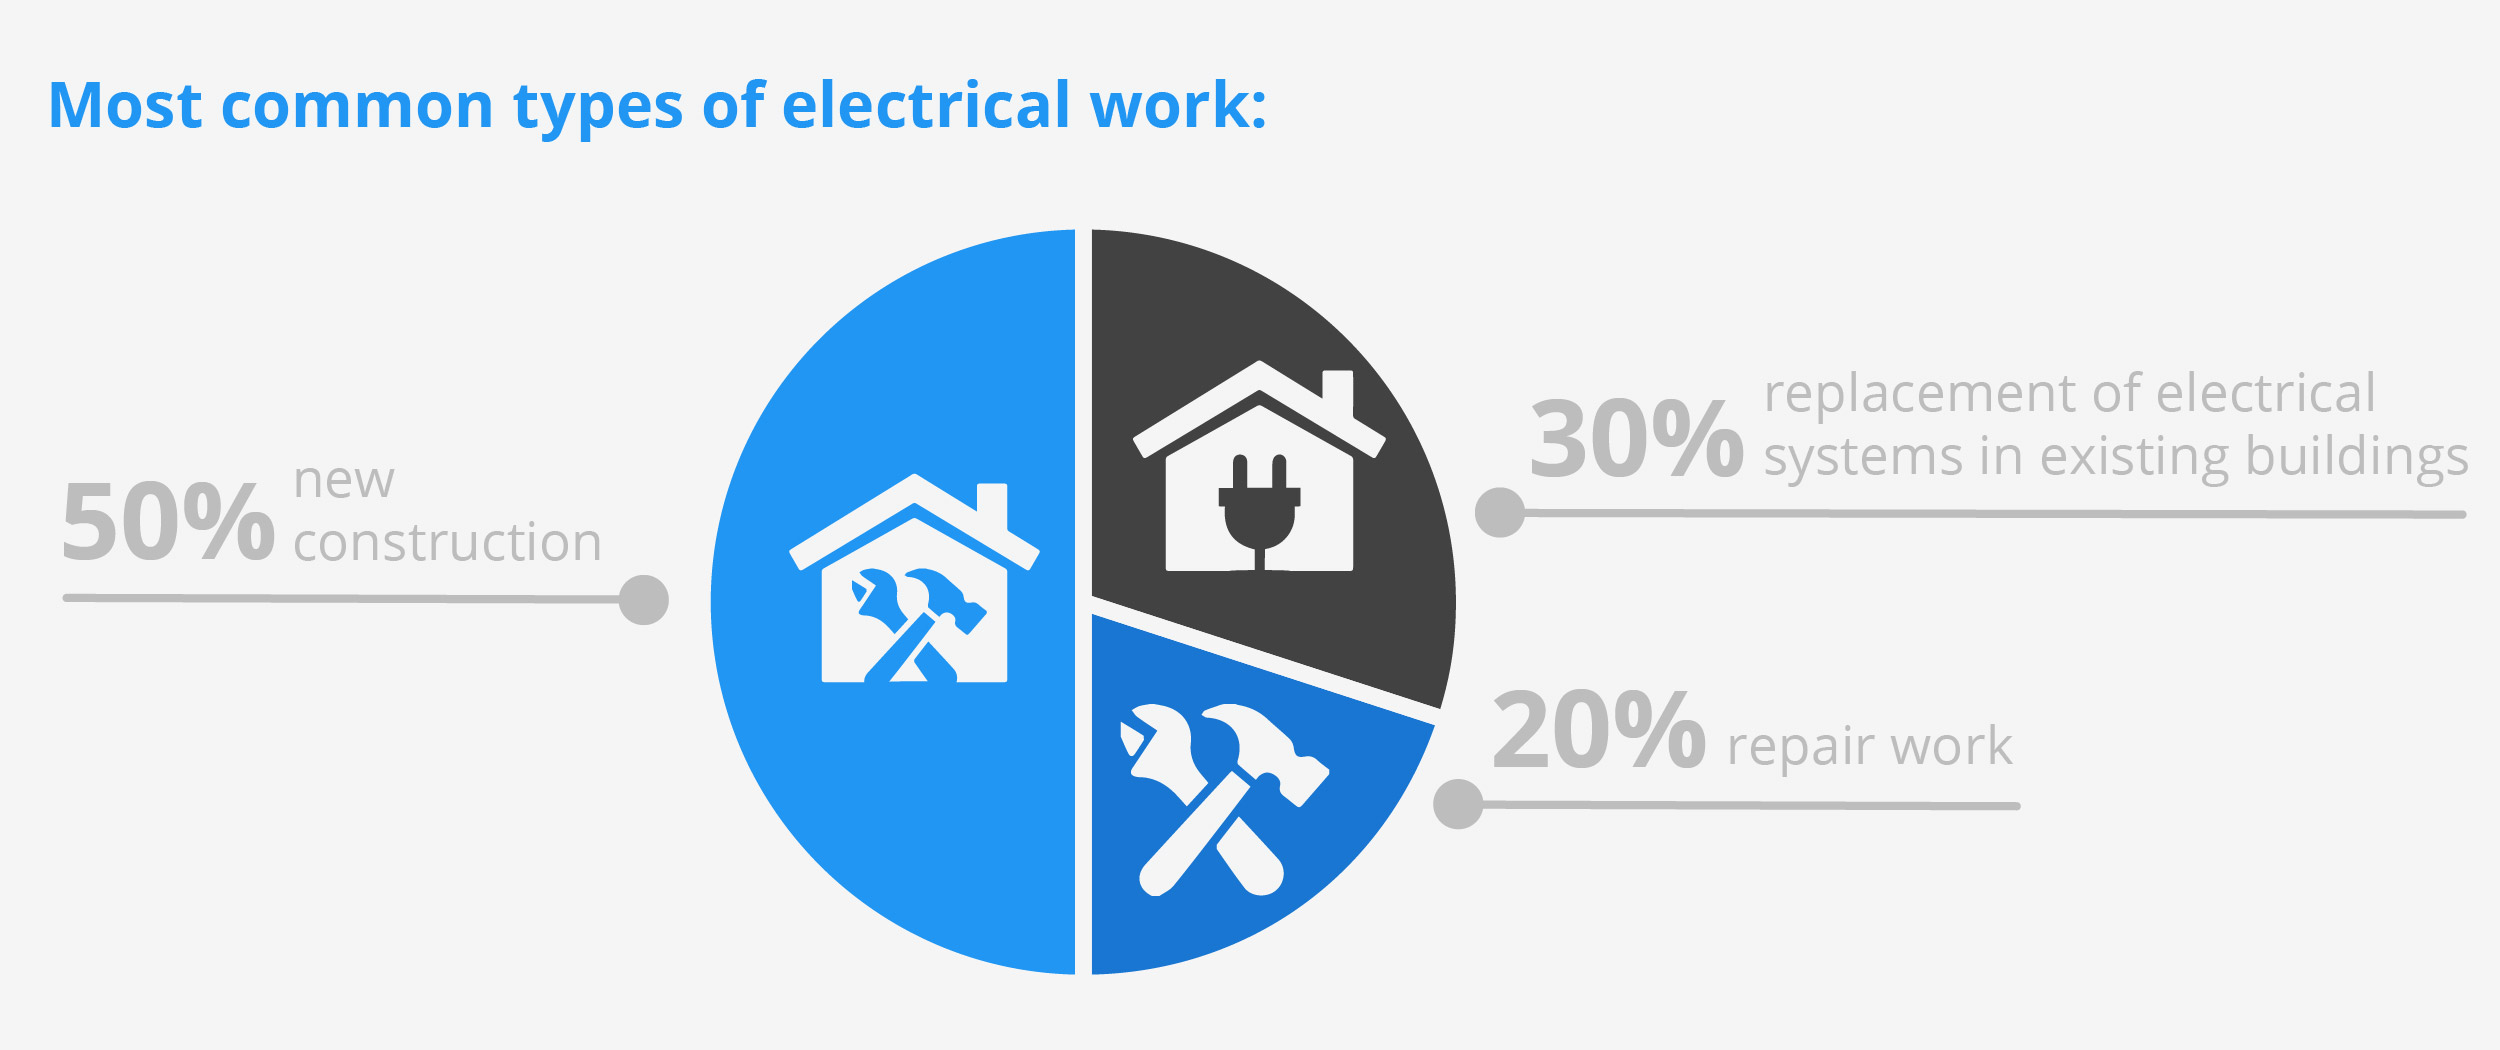 Common electrical work